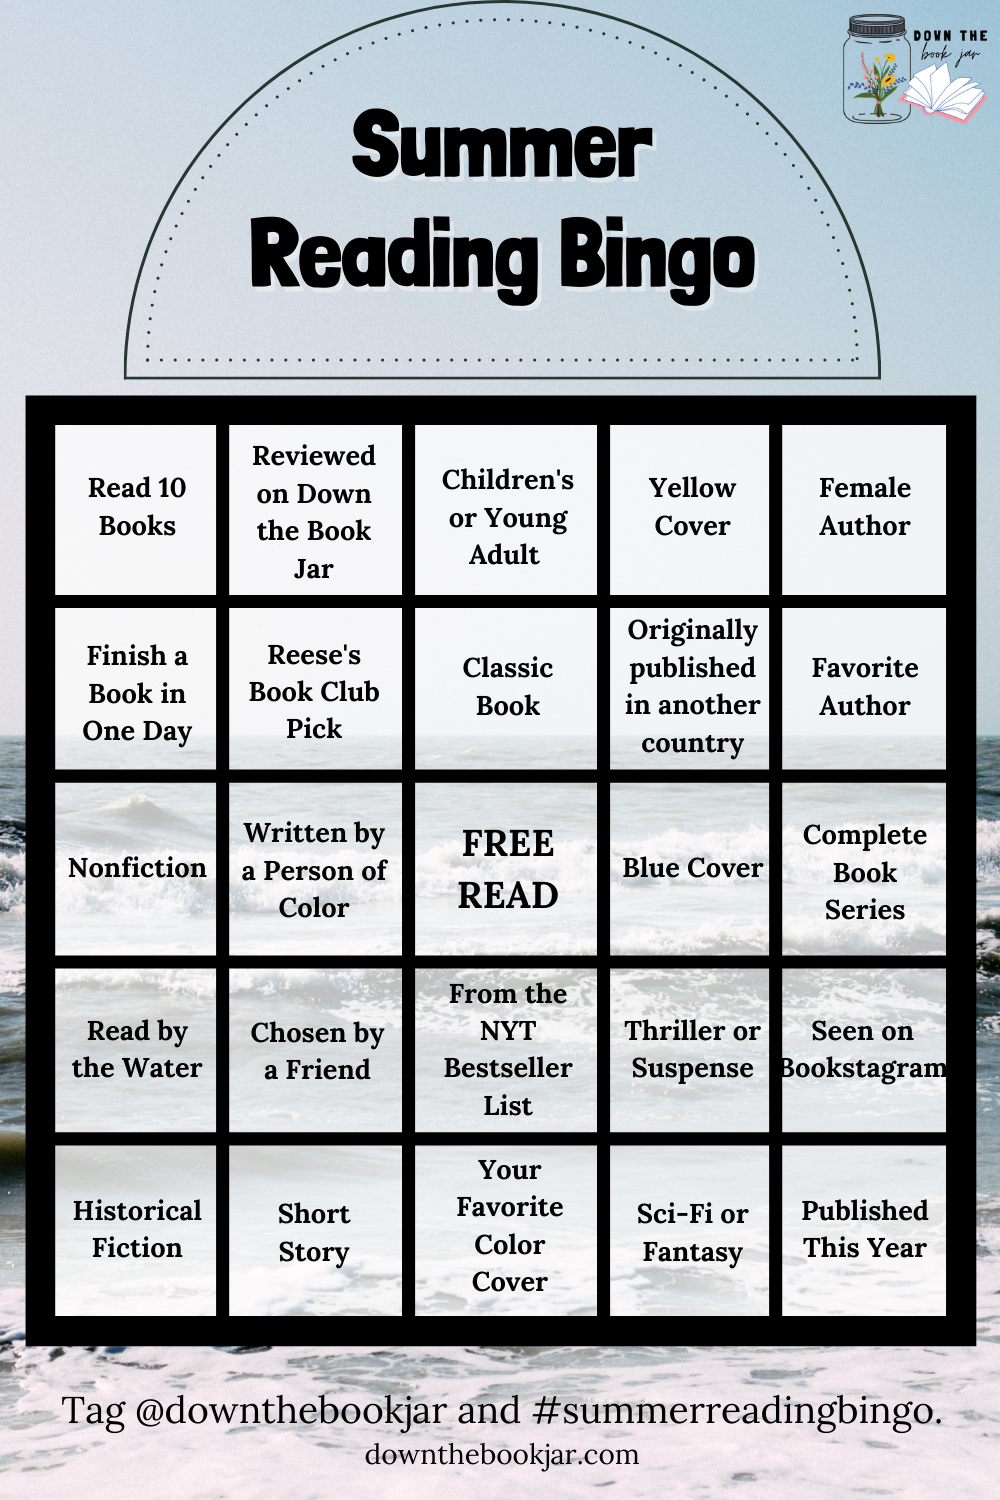 summer reading bingo for adults 5x5 grid with options